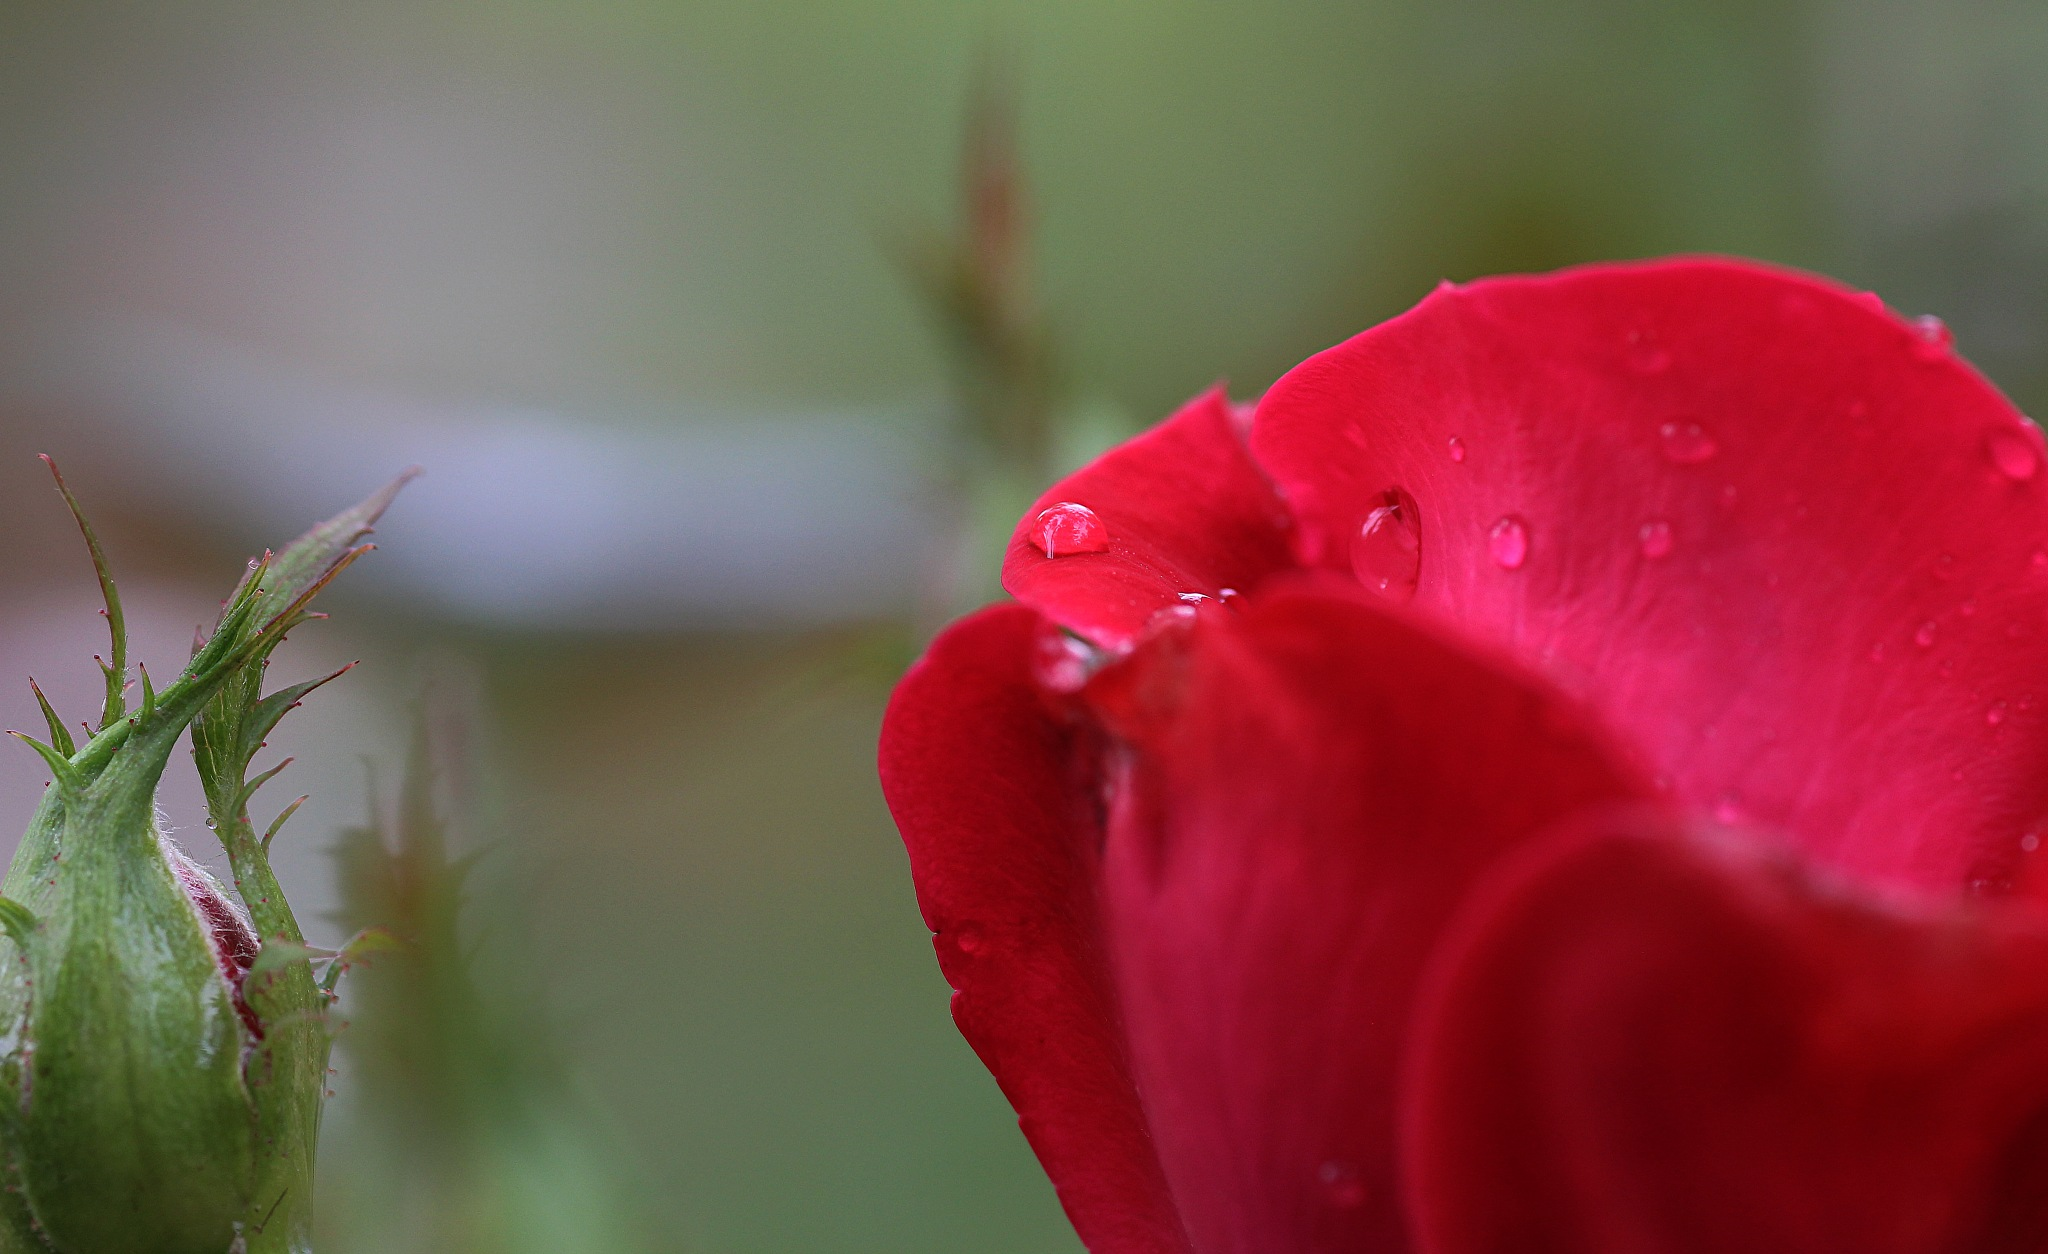 Morning red rose by Cachoublond